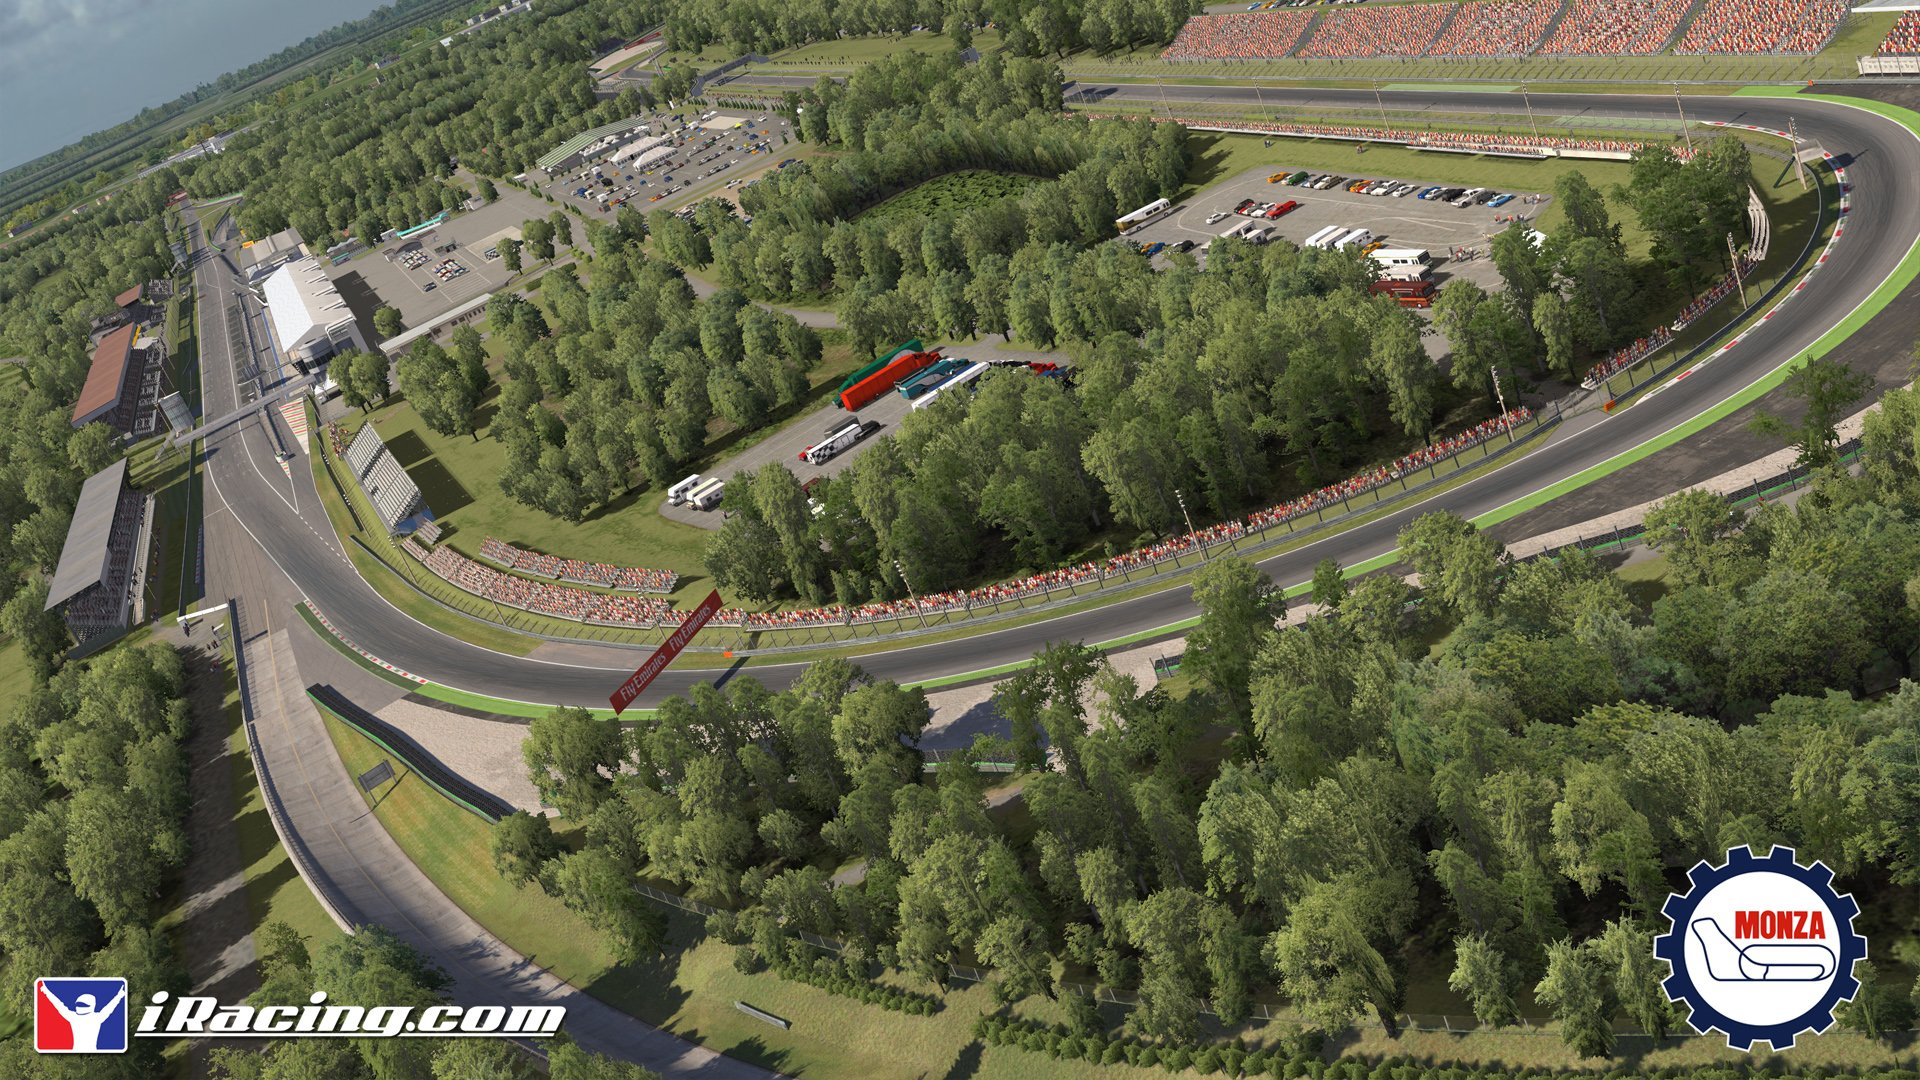 Circuit Monza Italia : Iracing monza screenshots inside sim racing